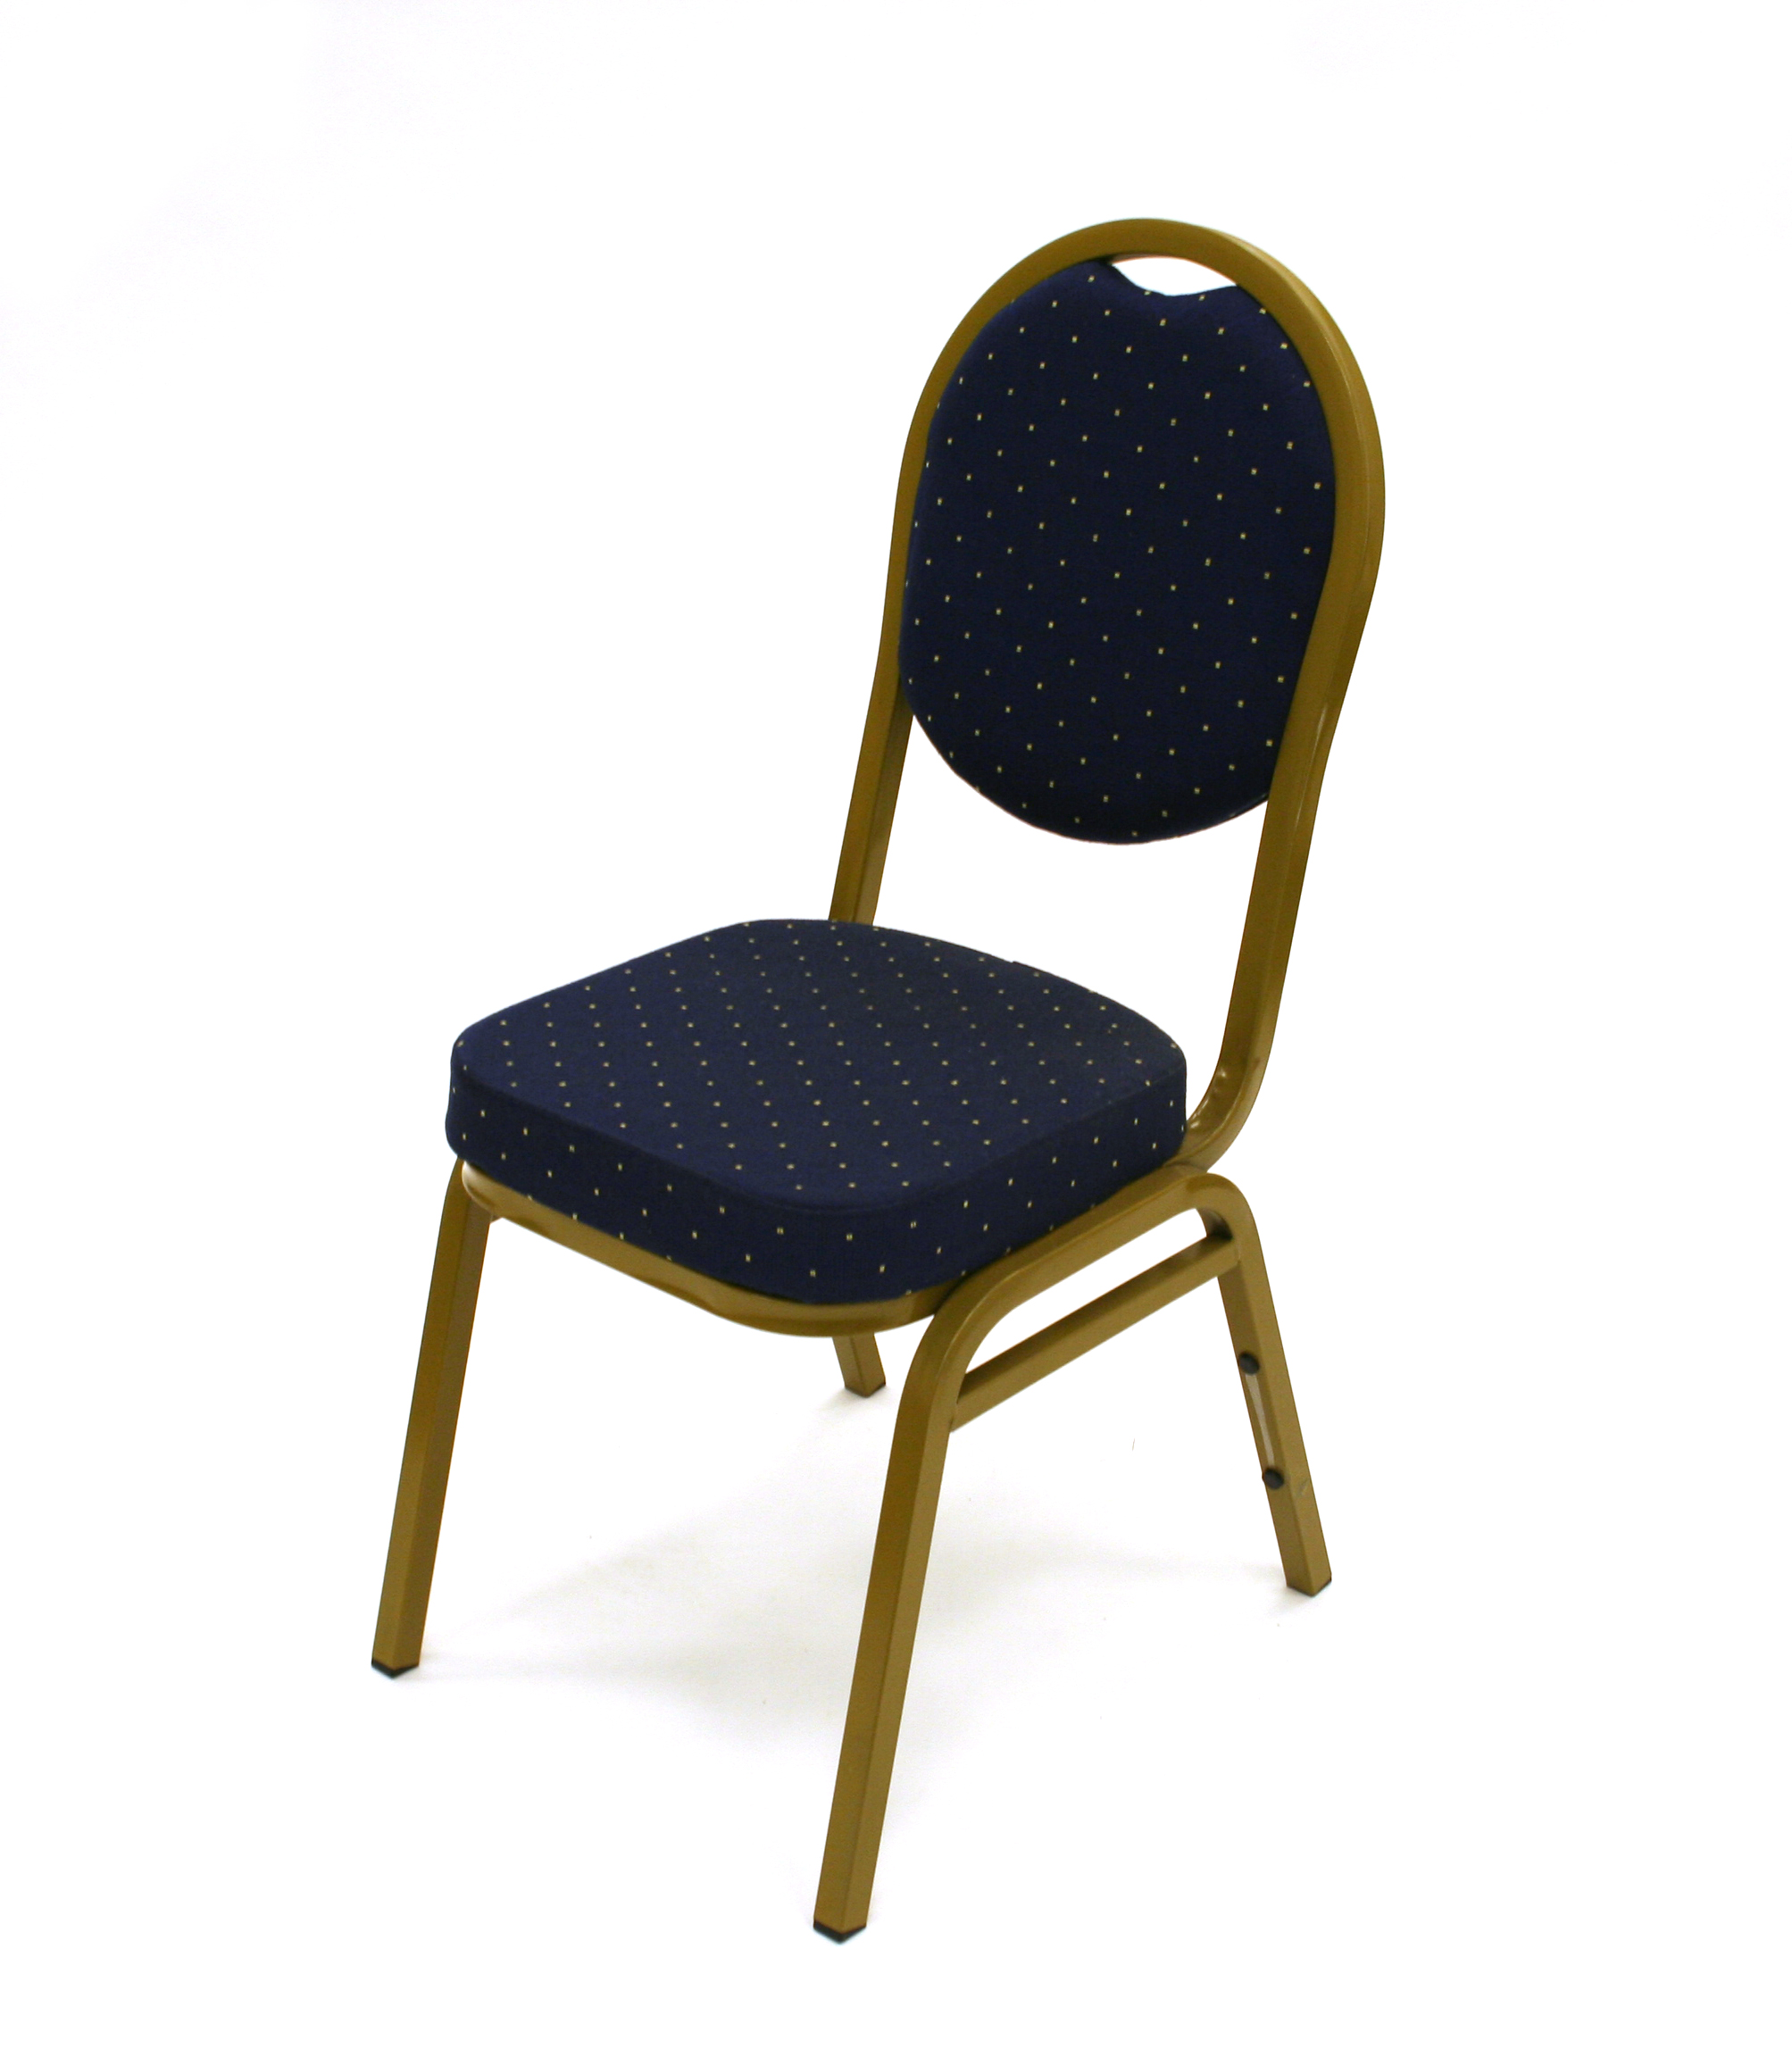 Blue & Gold Banqueting Chair Hire - Weddings, Events, Functions - BE Event Hire